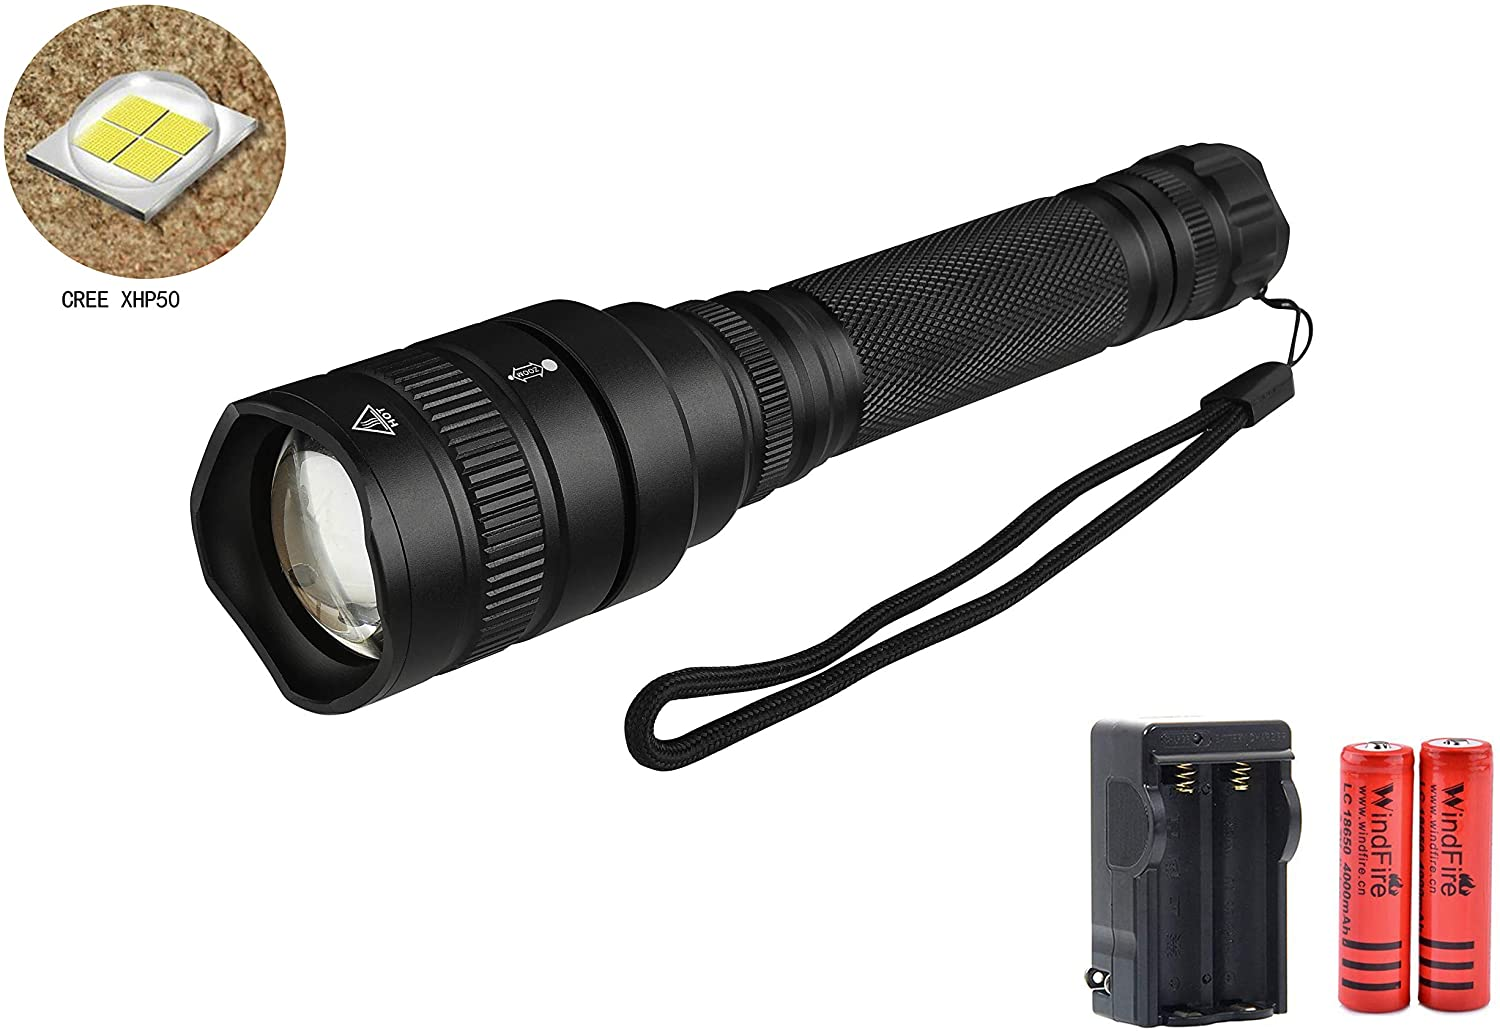 LED Flashlight Rechargeable Tactical Flashlight, 2500 Lumens 5 Modes Water Resistant Handheld Outdoor Camping Flashlight with Batteries & Charger